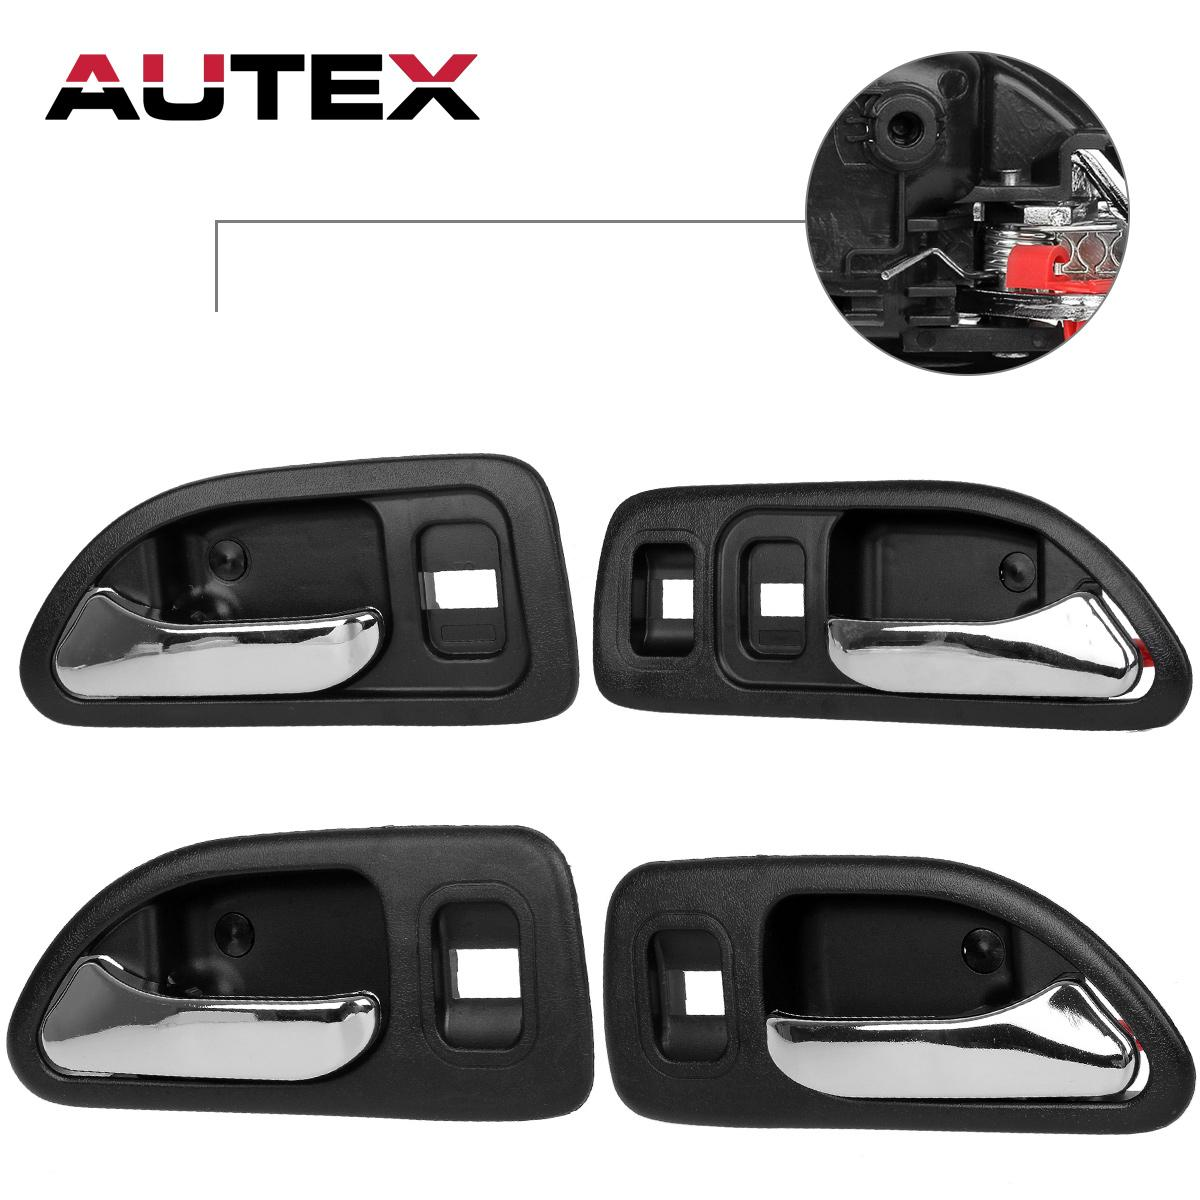 4 chrome internal front rear left right door handle black for 1997 honda civic window crank handle